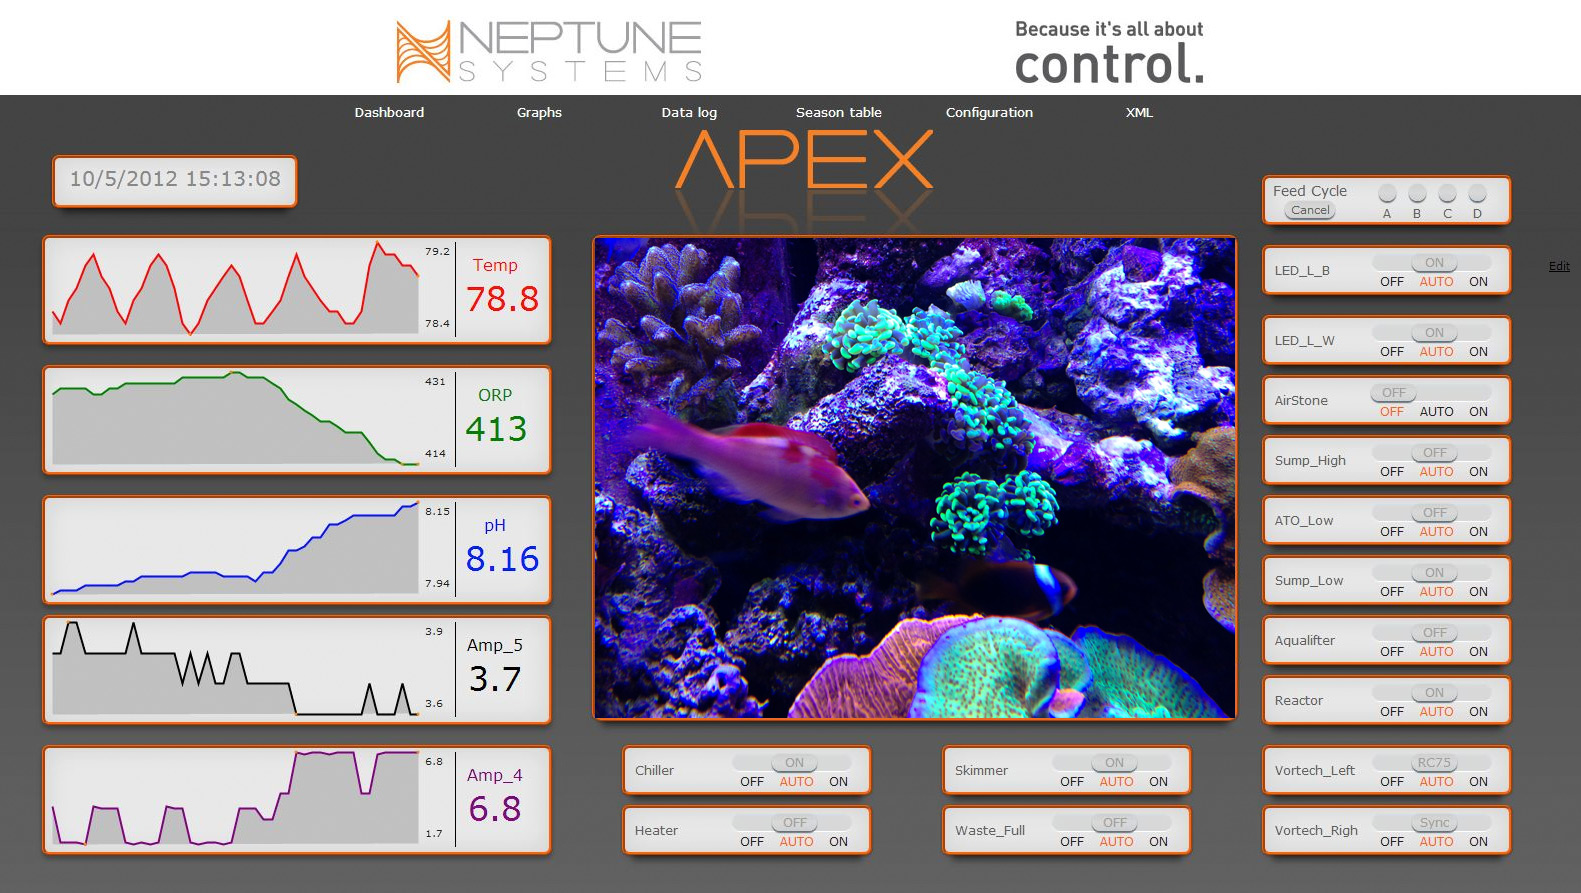 dash1 installing a neptune system's apex controller reefs com Neptune Apex Logo at bayanpartner.co